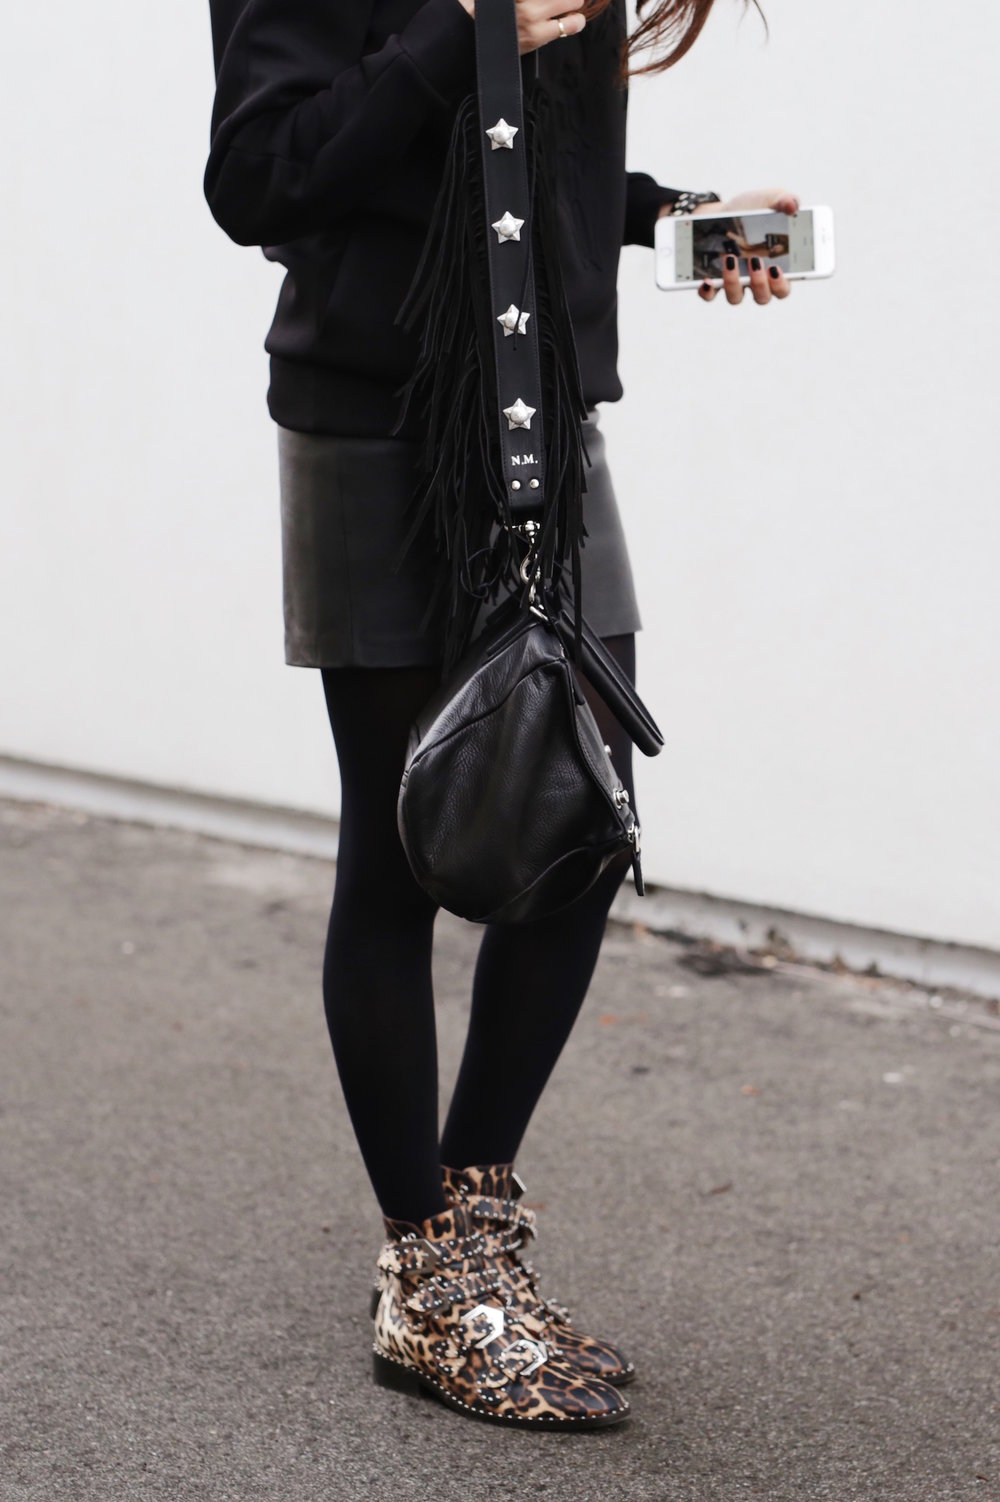 Givenchy leopard print studded boots, Pandora bag, Kate Cate bag strap and leather skirt street style_6026.JPG